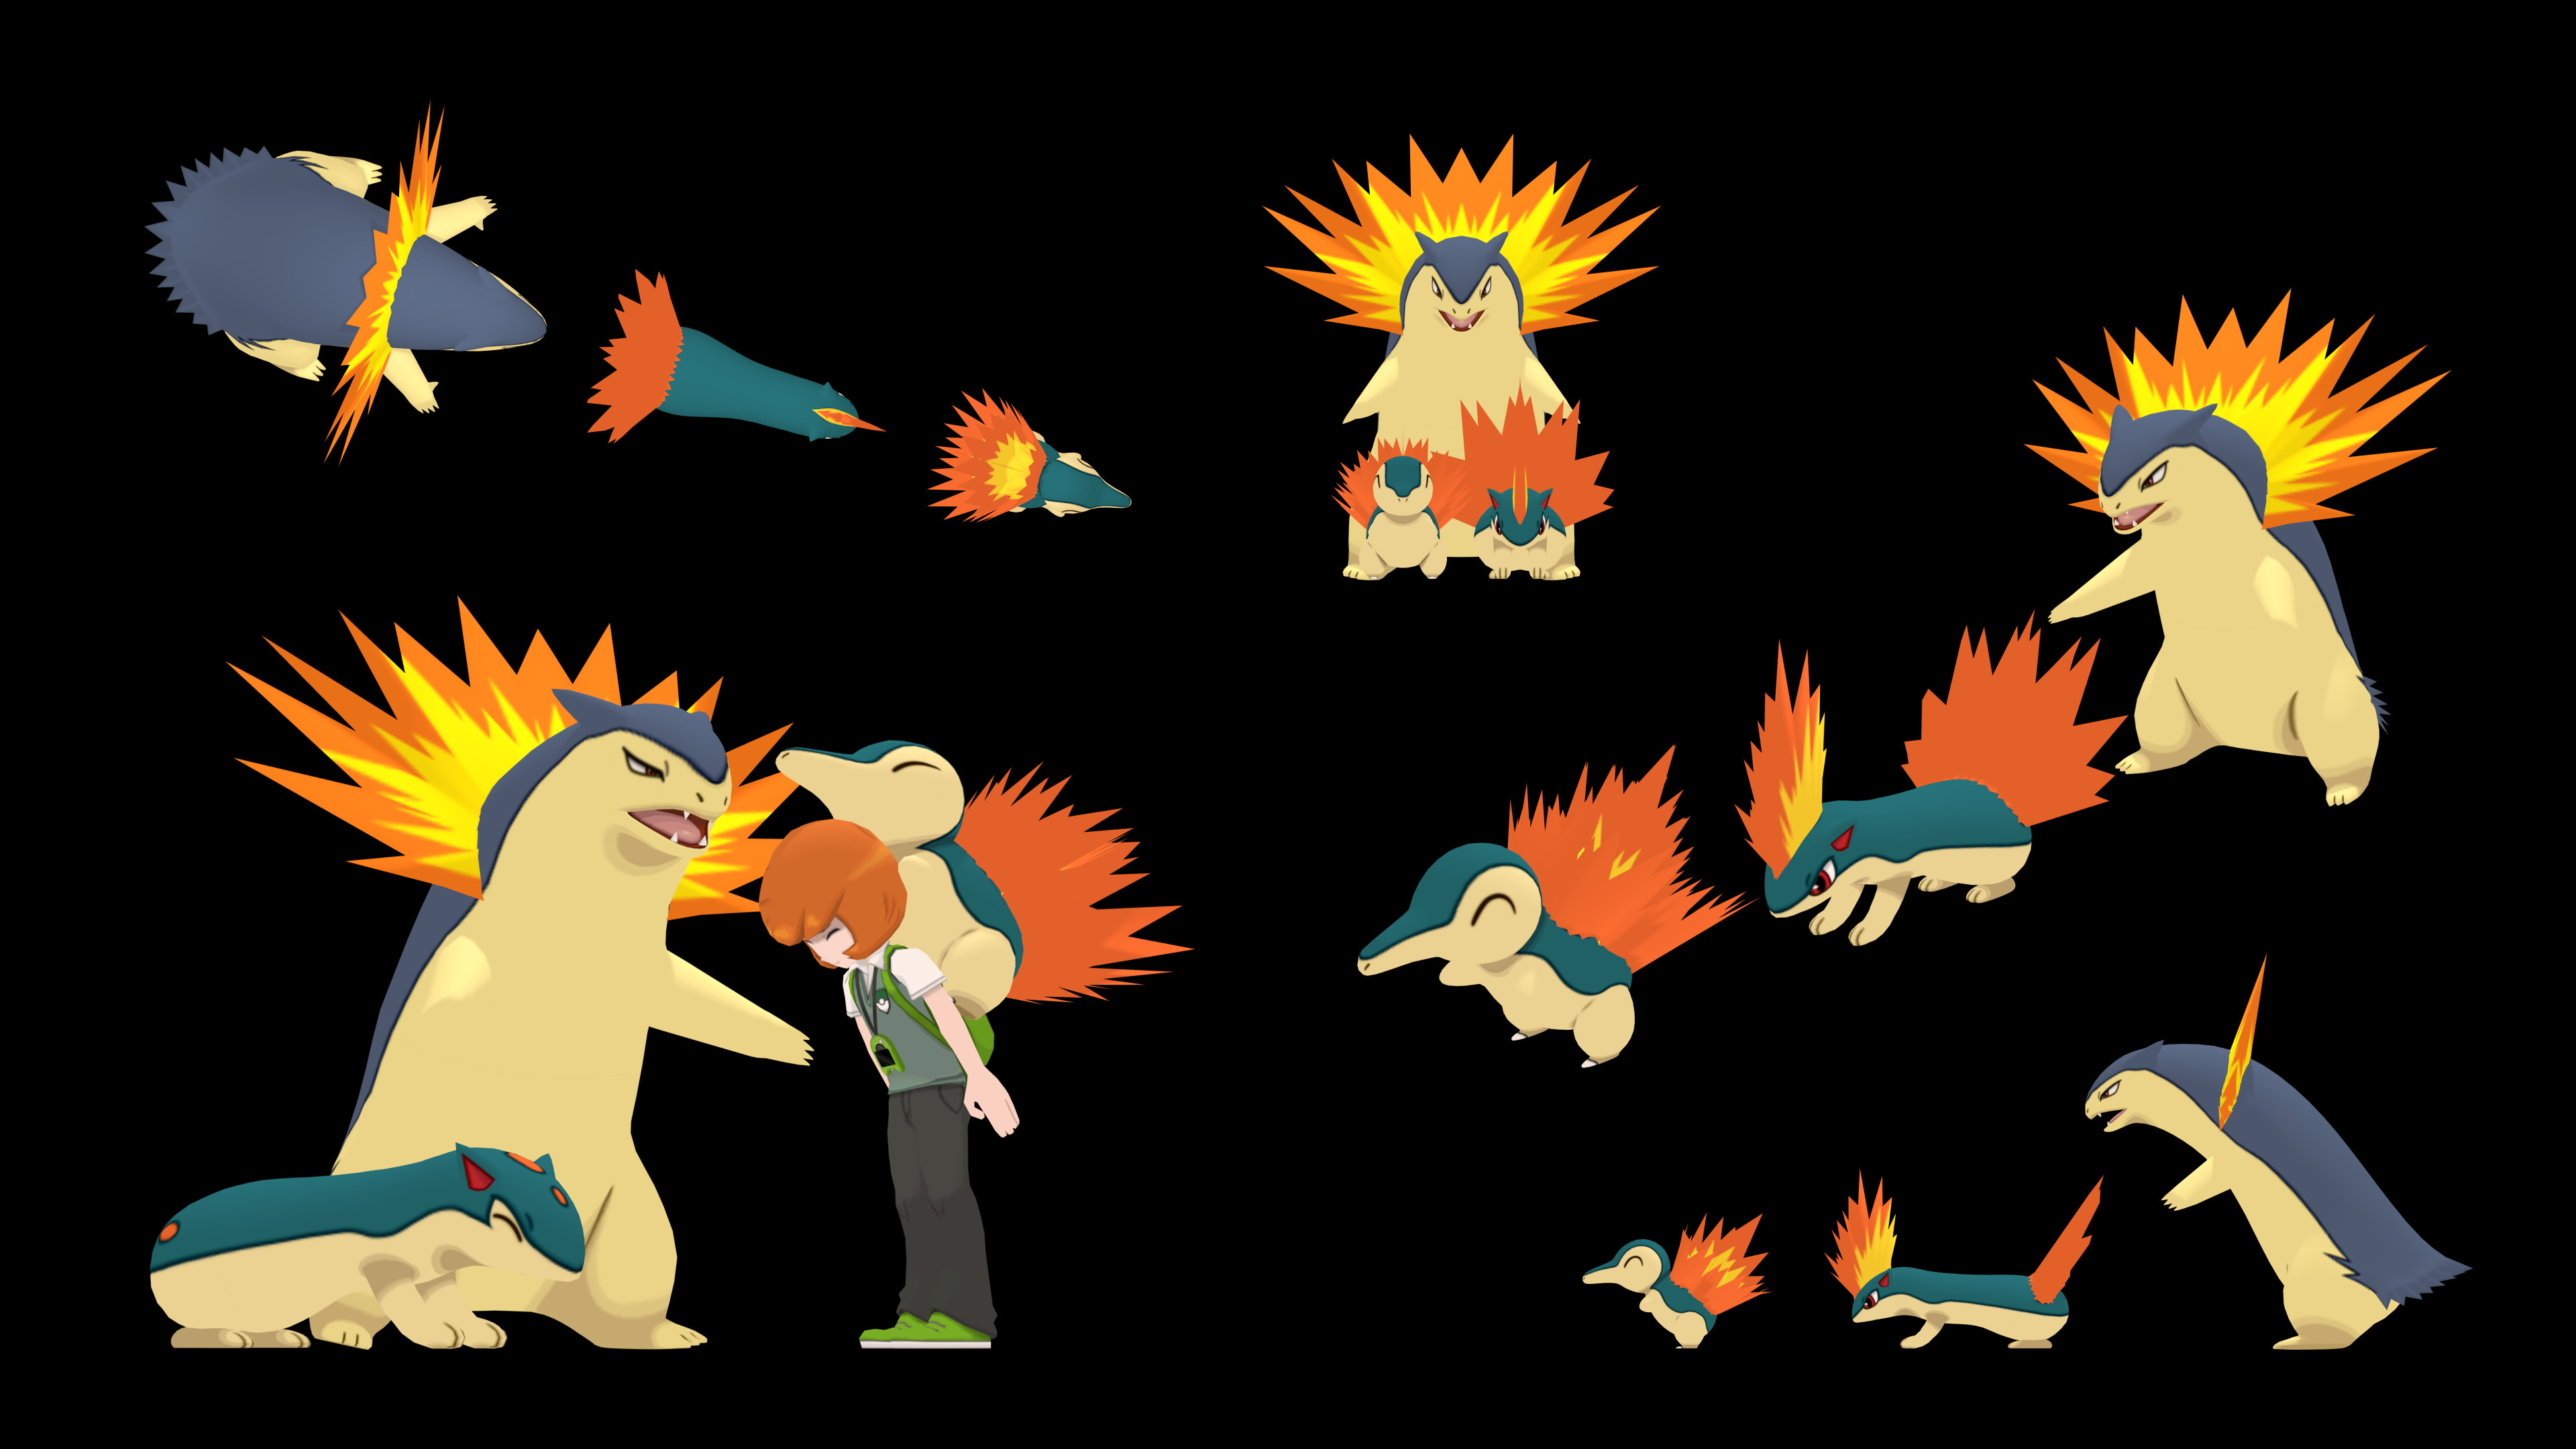 3840x2160 Size comparison through evolutions #21: Cyndaquil